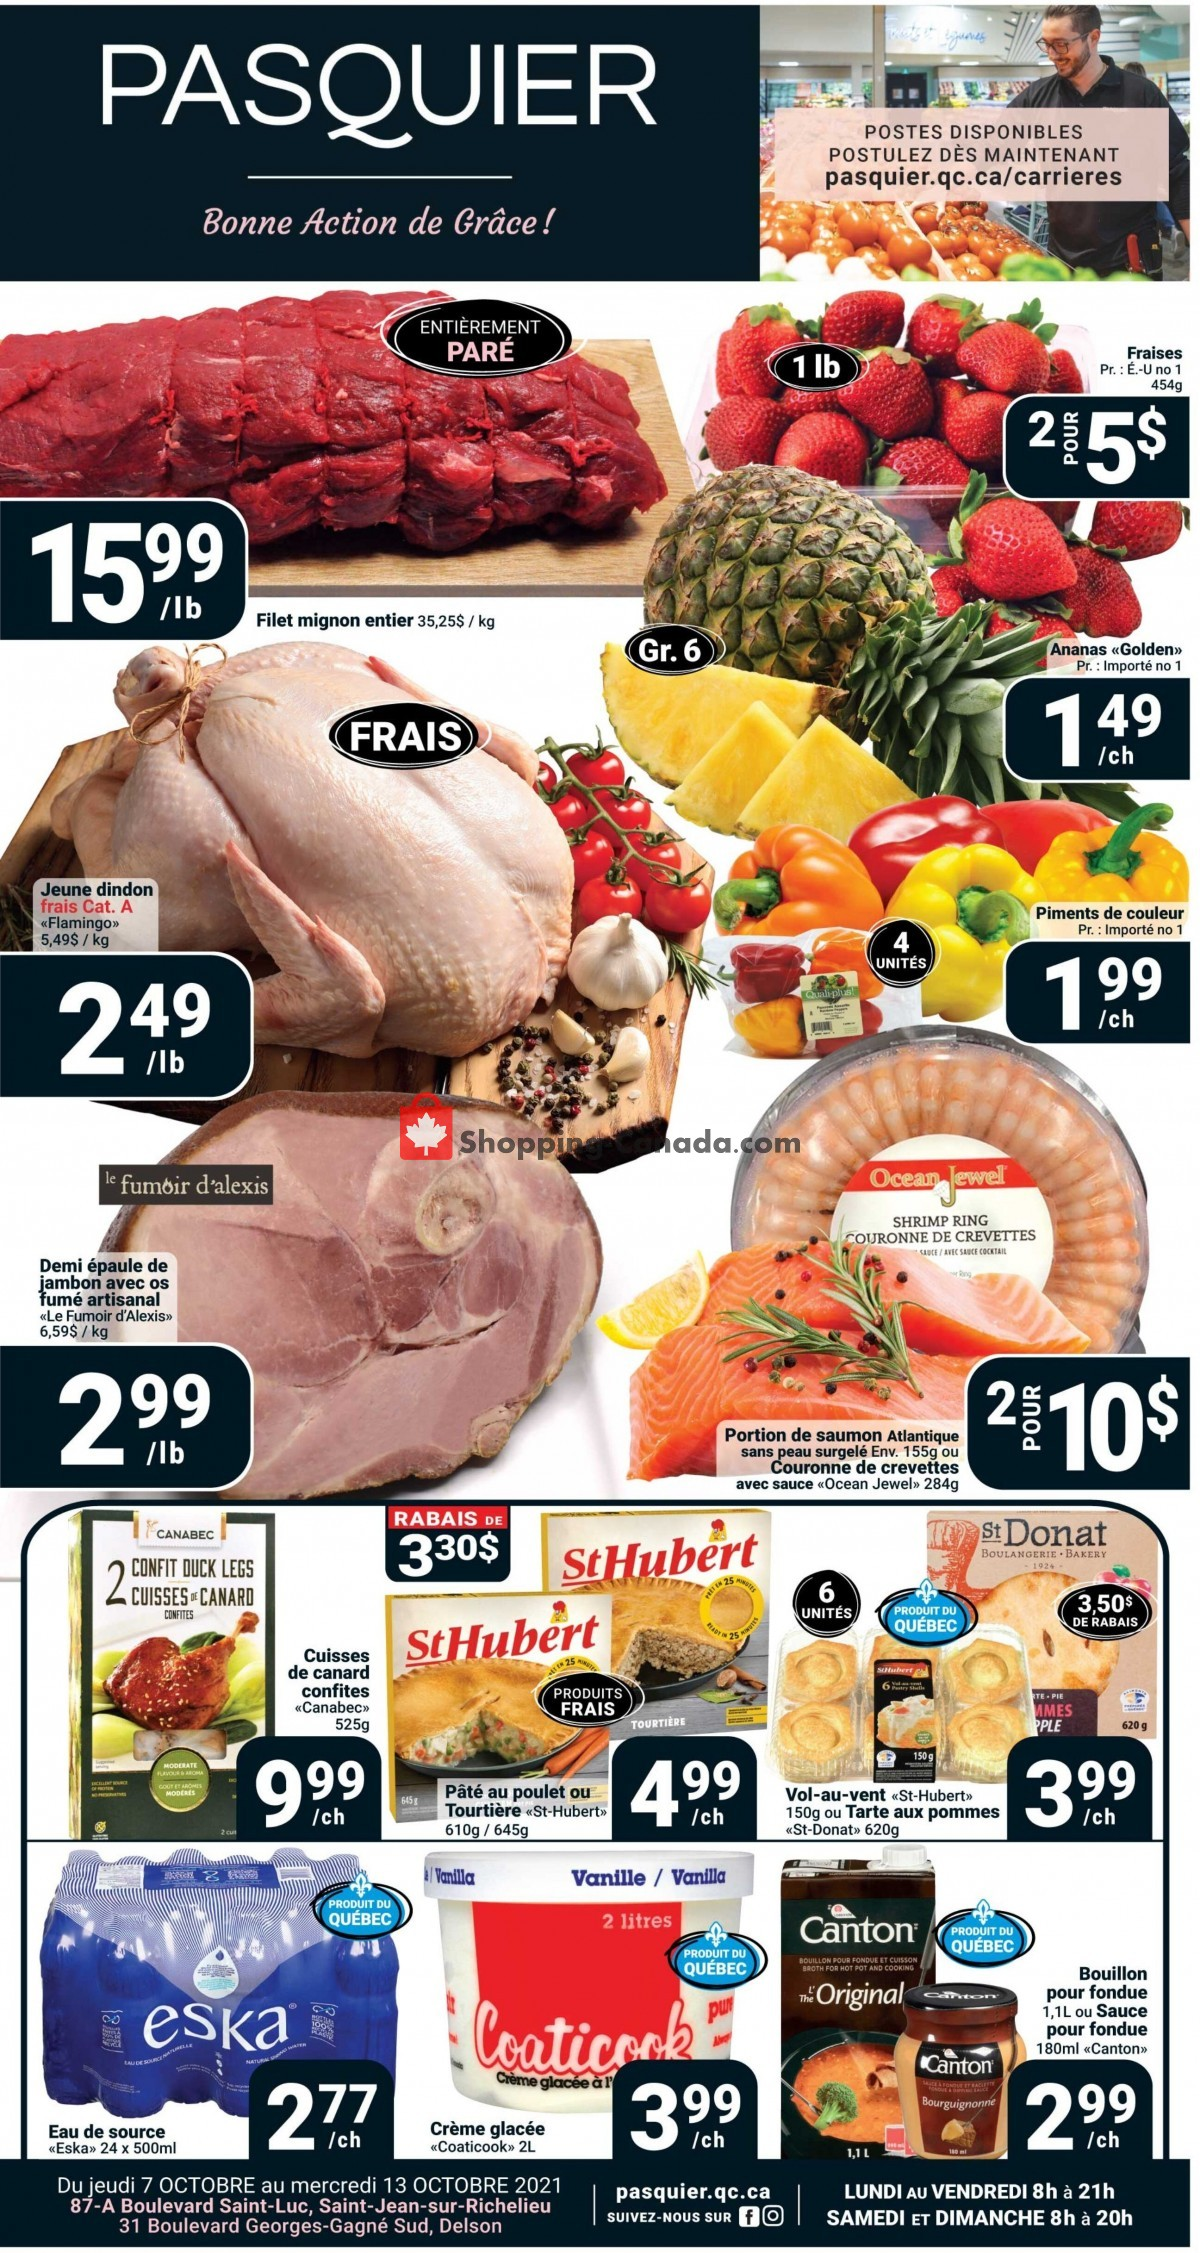 Flyer Pasquier Canada - from Thursday October 7, 2021 to Wednesday October 13, 2021